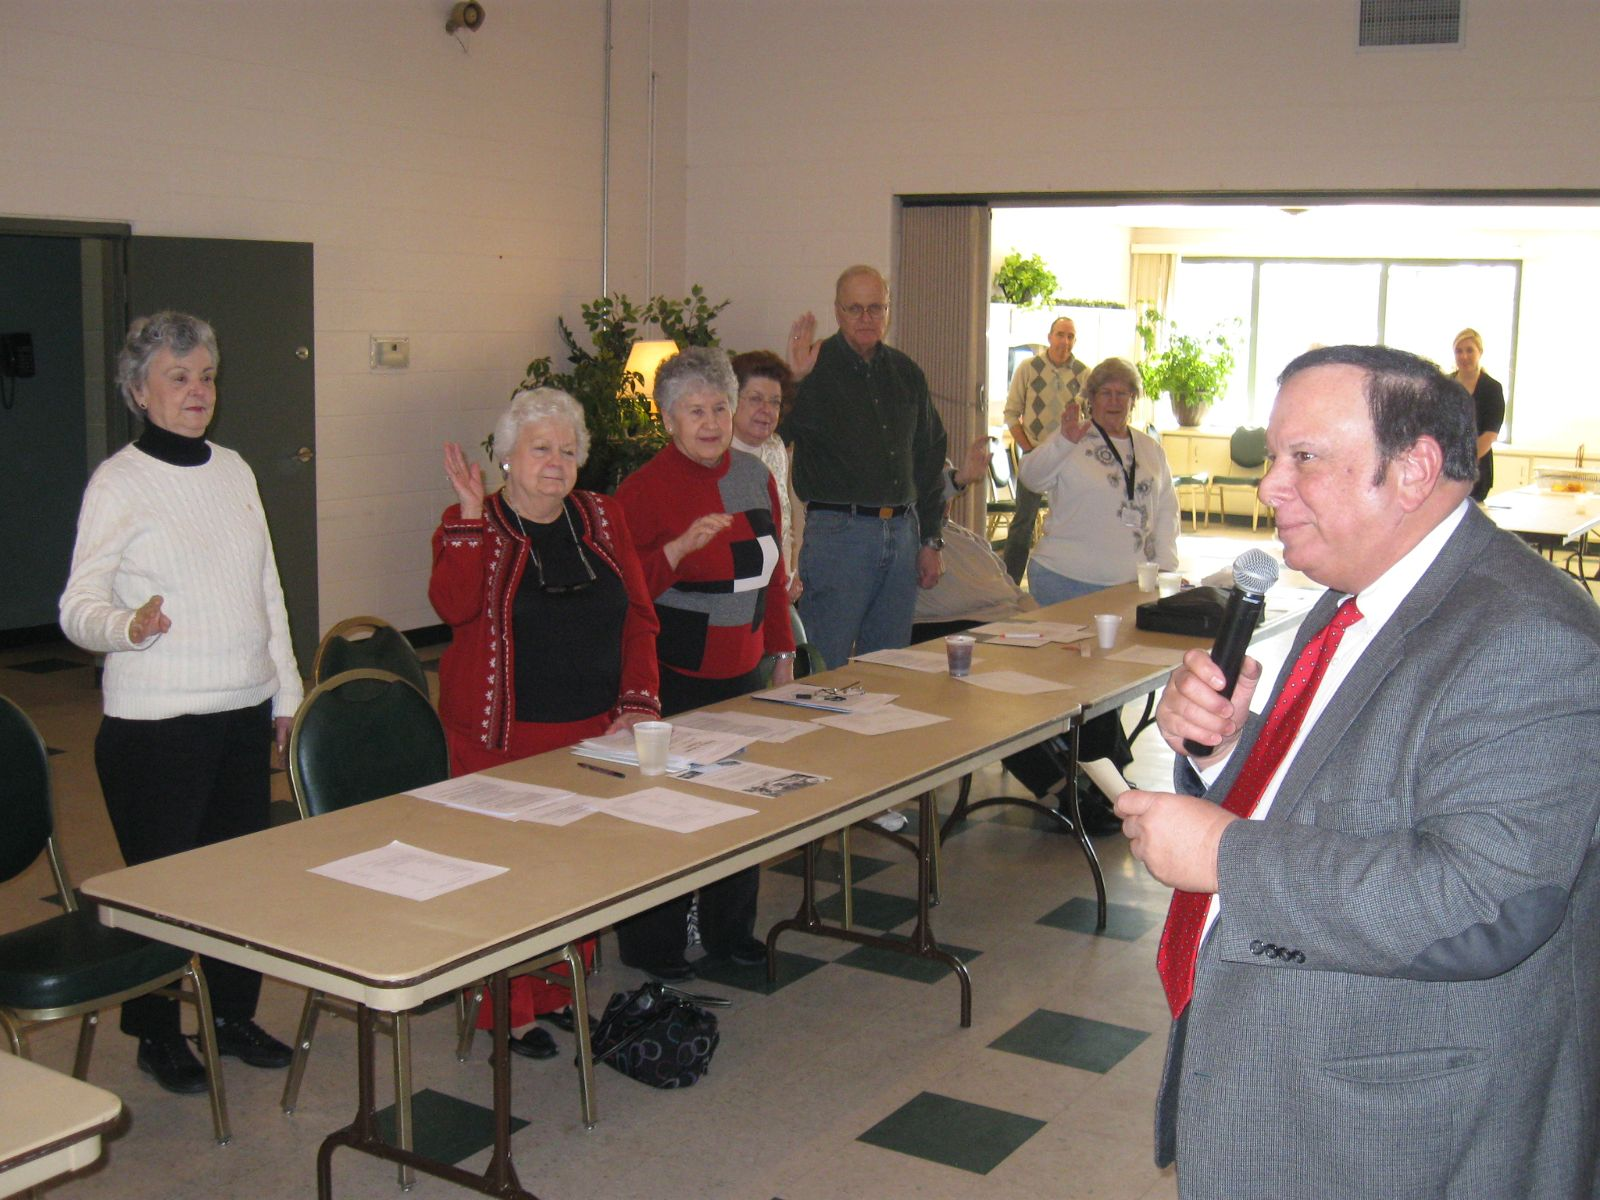 Image of Trustee Tony Rosiello swearing in the new Officers of the Green Township Senior Center